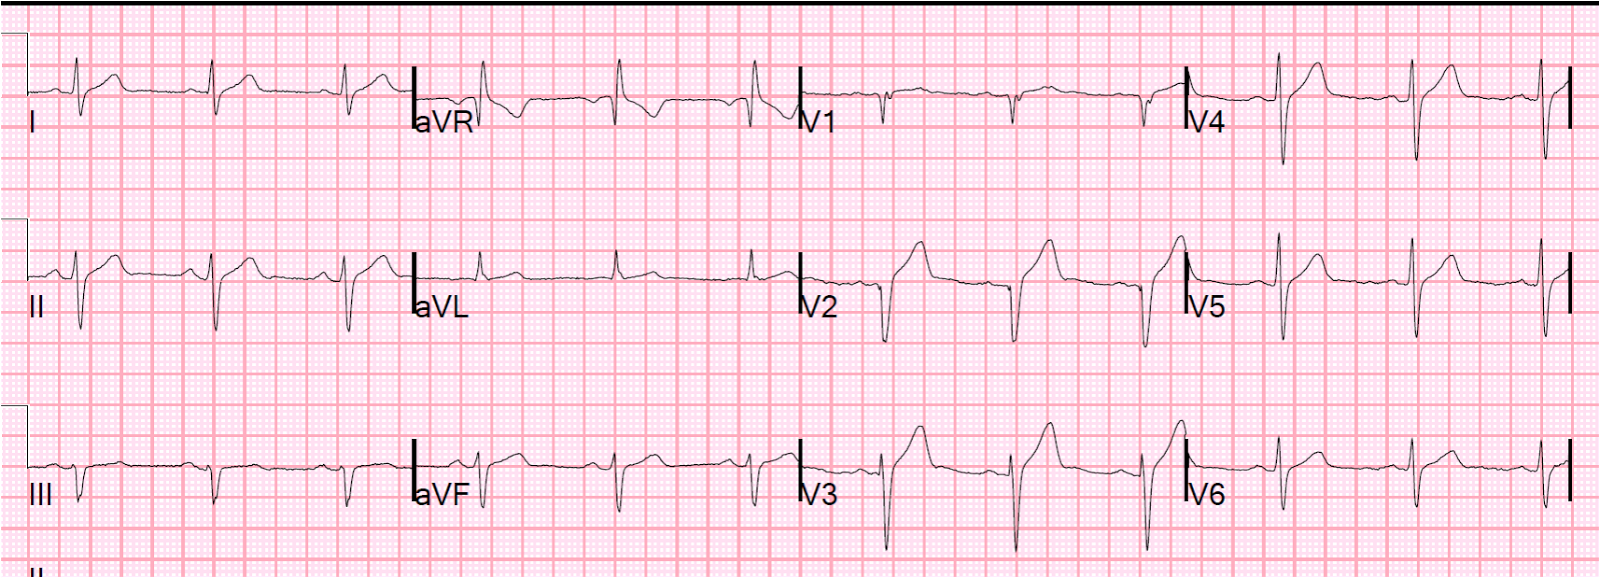 Dr. Smith's ECG Blog: 2012